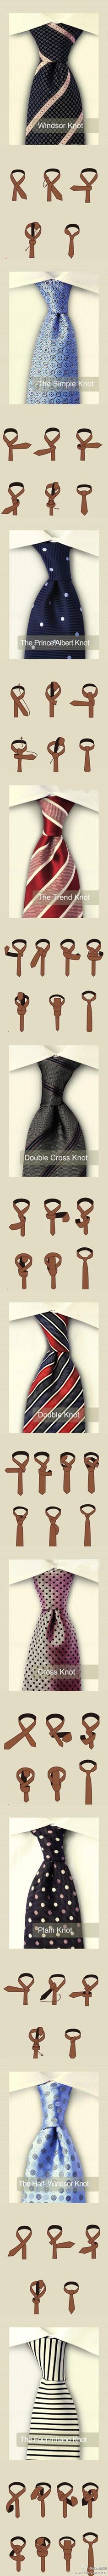 the knot, oneday, remember this, tying ties, tie a tie, son, neck ties, tying a tie, tie knots